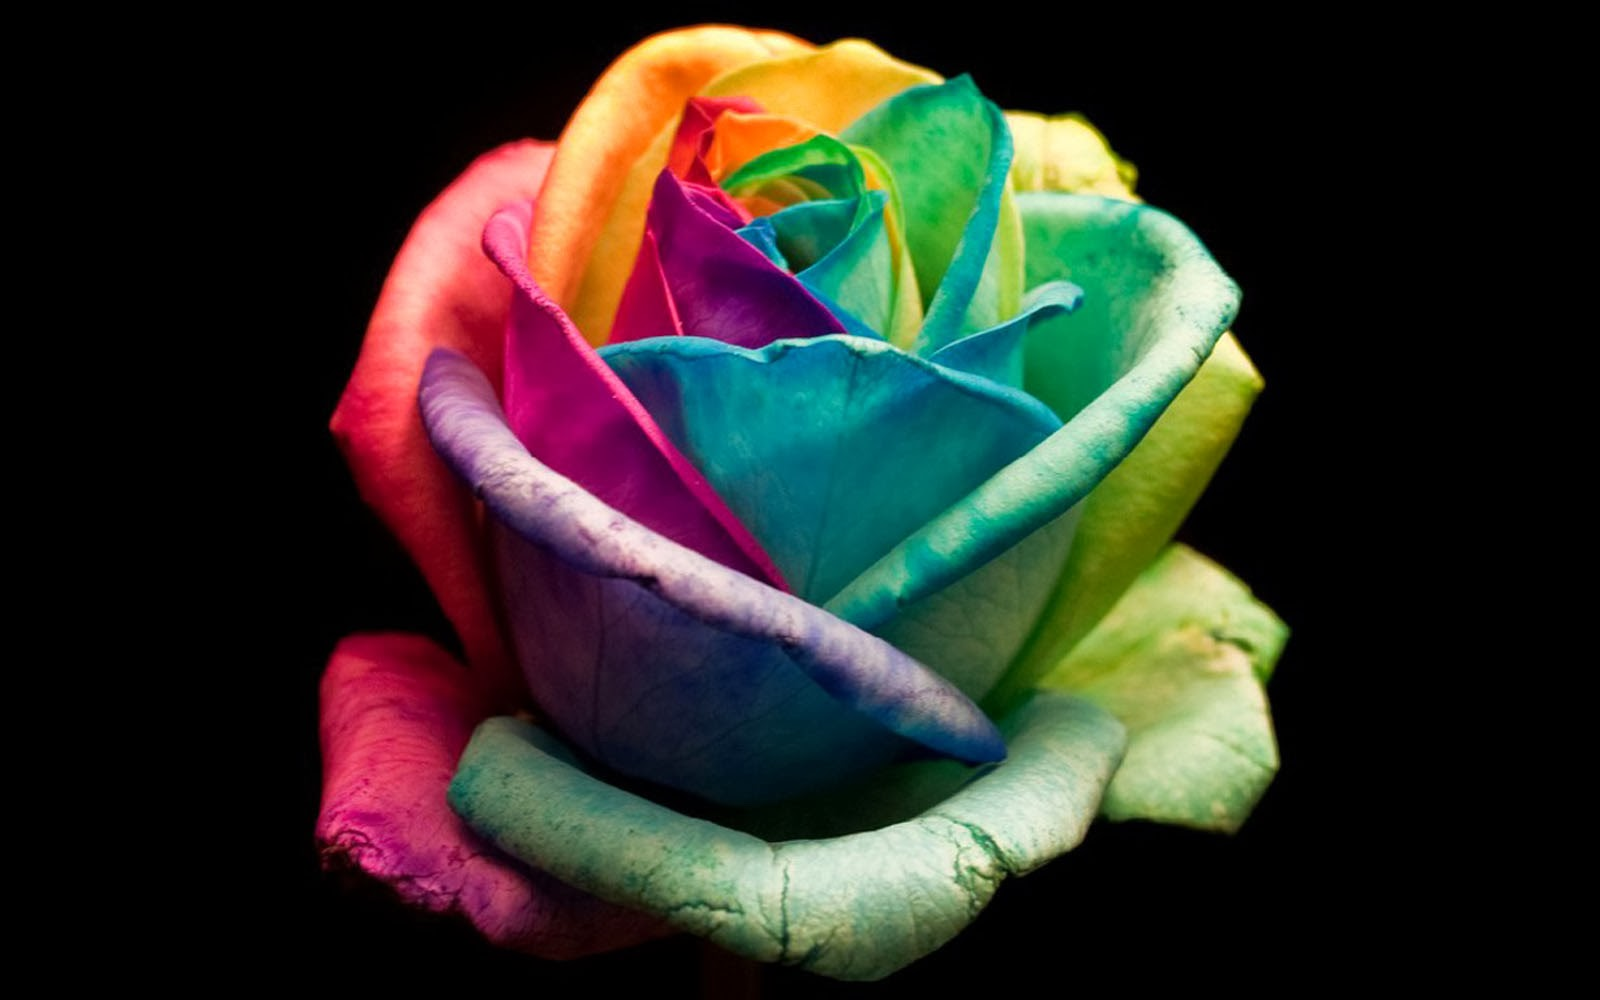 Clovisso Wallpaper Gallery: Colorful Rose Wallpapers